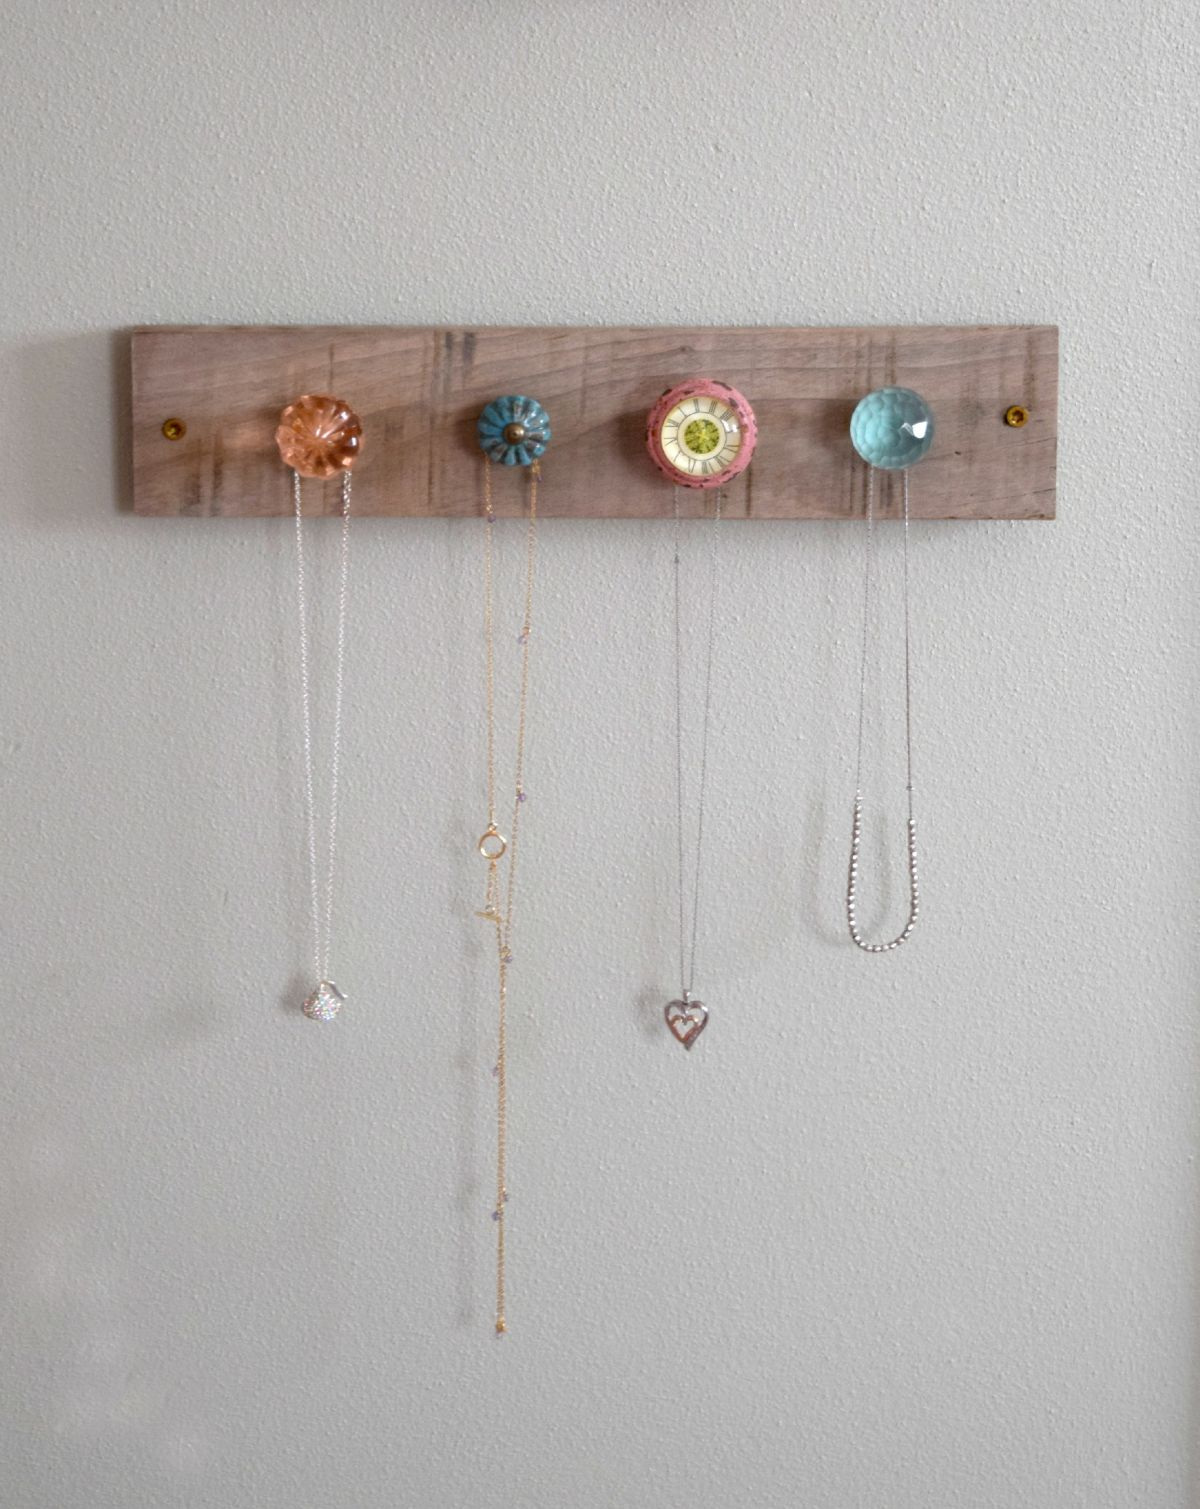 Creative-jewelry-wall-display